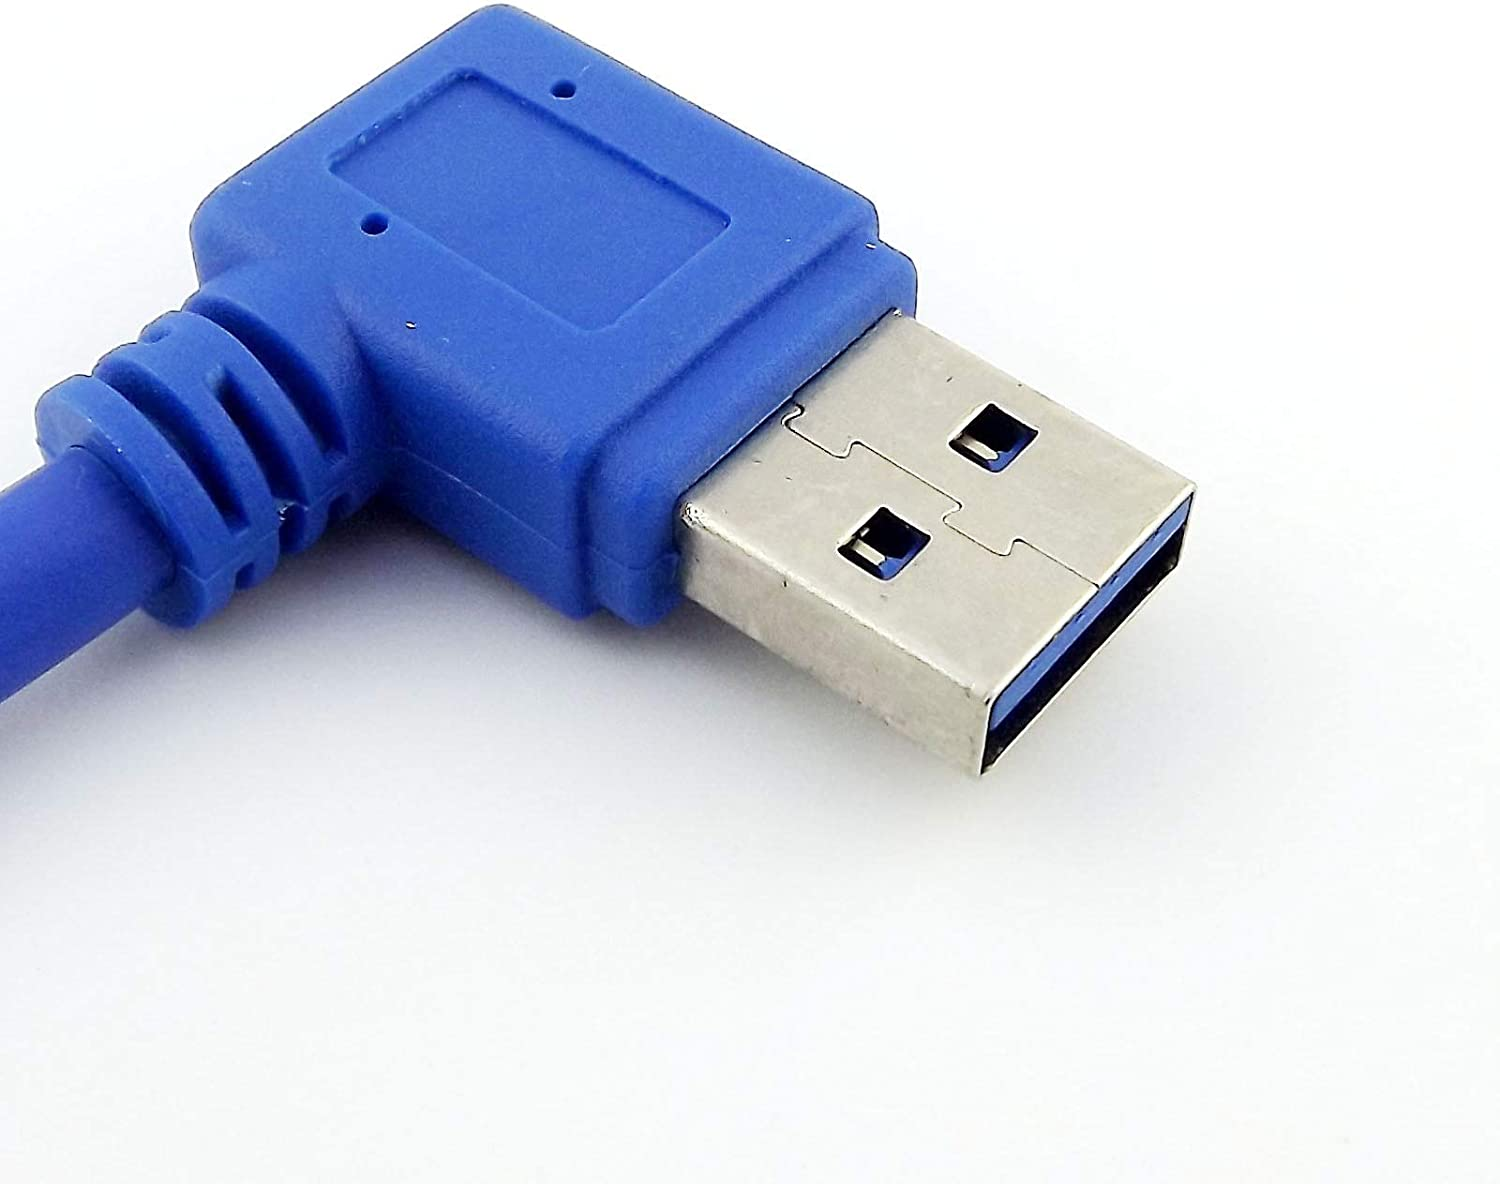 Connector and Terminal / USB 3.0 A Male Plug 90 Degree Left Angle to A Male Right Angle Adapter Cable 1FT